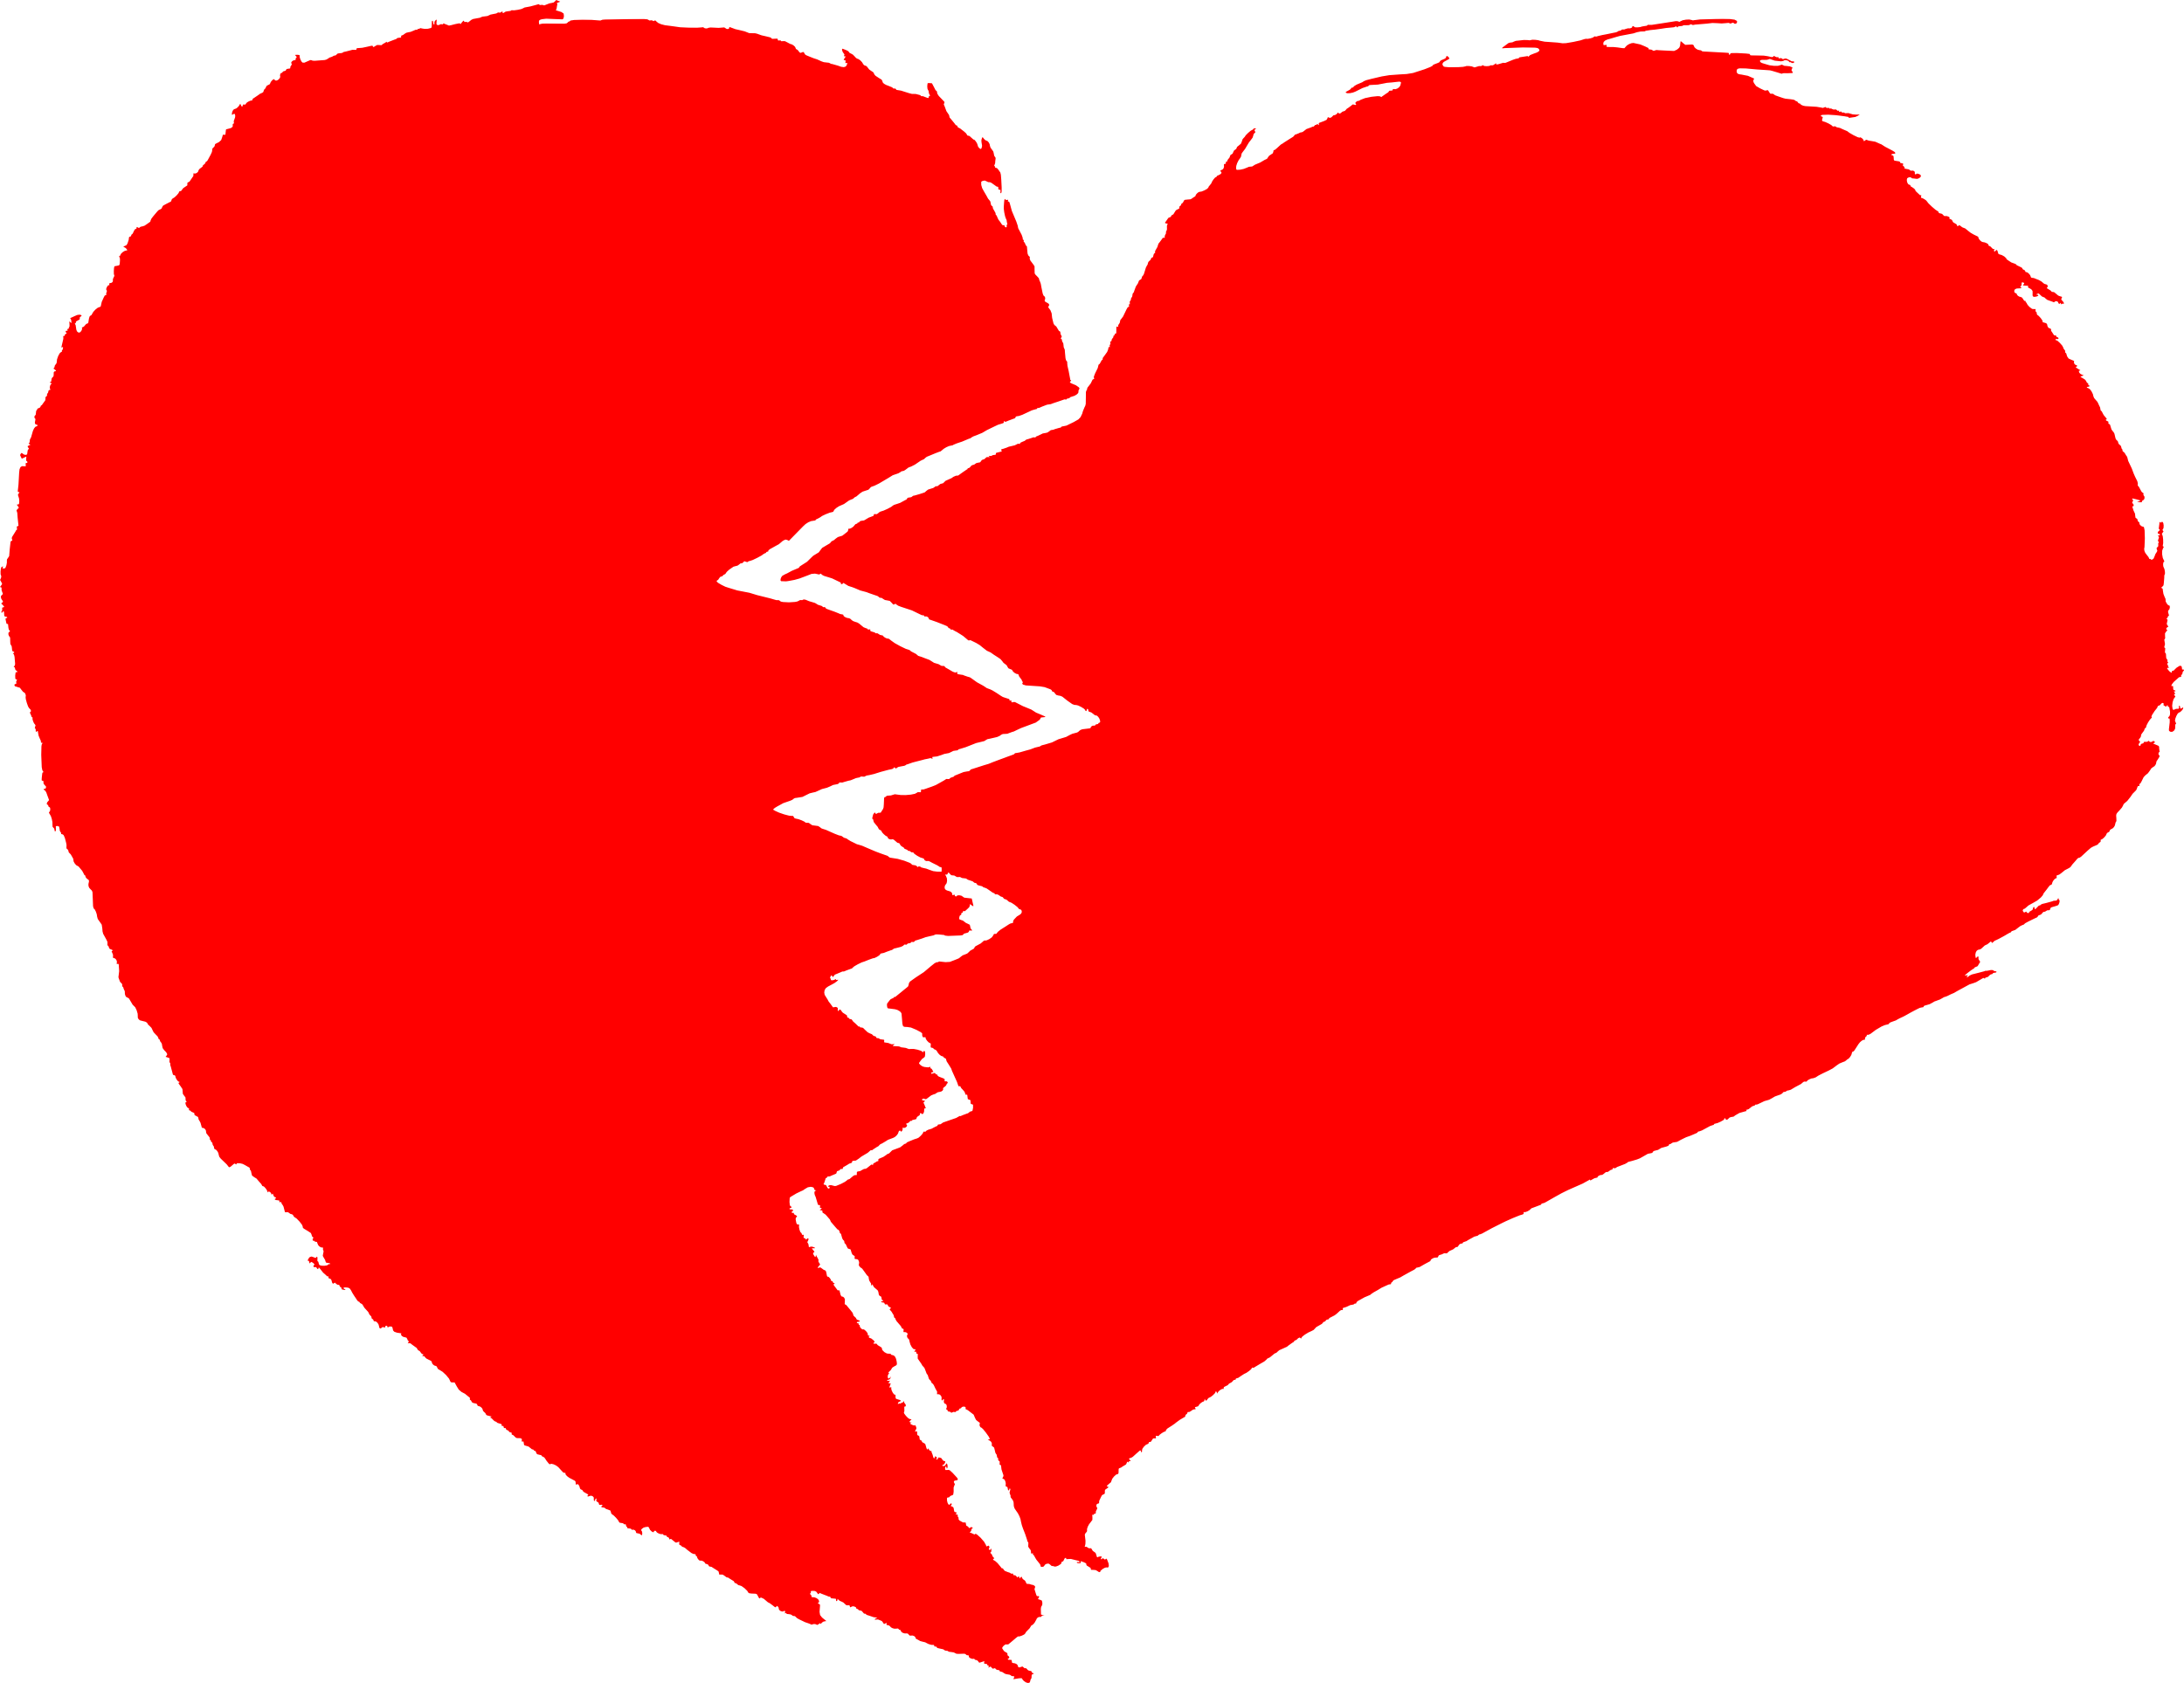 Free clipart broken heart image library library Broken Heart (PNG Transparent) | OnlyGFX.com image library library